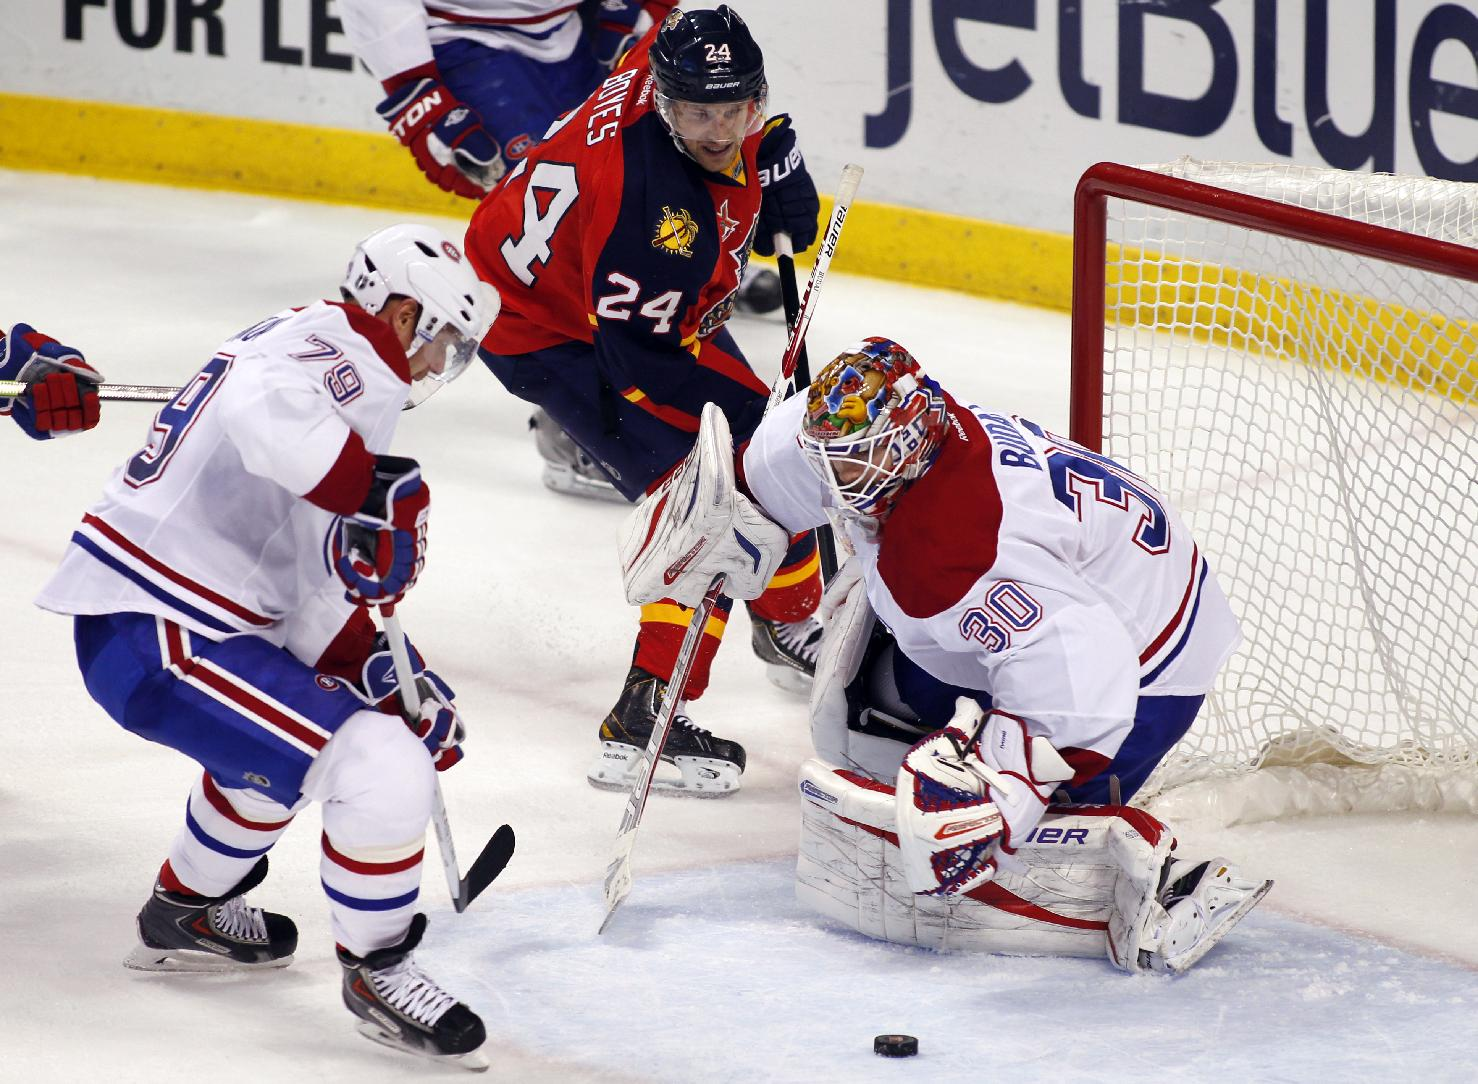 Montreal Canadiens goalie Peter Budaj (30) deflects a shot as teammate Andrei Markov (79) and Florida Panthers right wing Brad Boyes (24) go after the puck during the second period of an NHL hockey game in Sunrise, Fla., Sunday, Dec. 29, 2013